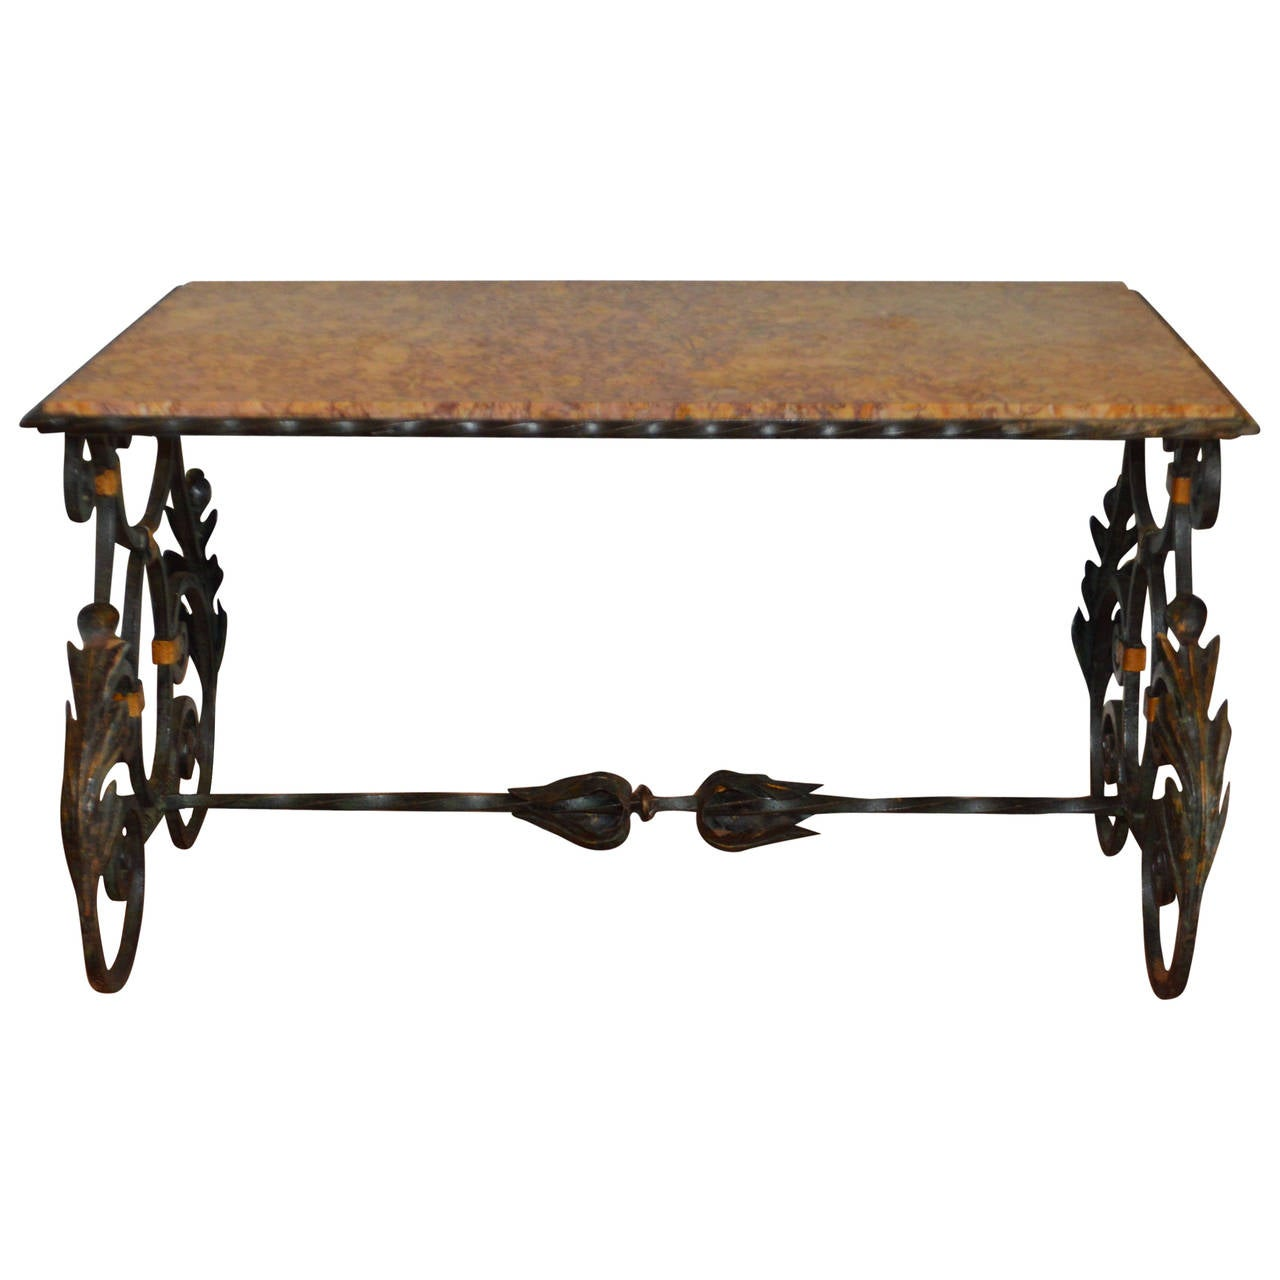 Belle Epoque Wrought Iron Coffee Table With Marble Top For Sale At 1stdibs